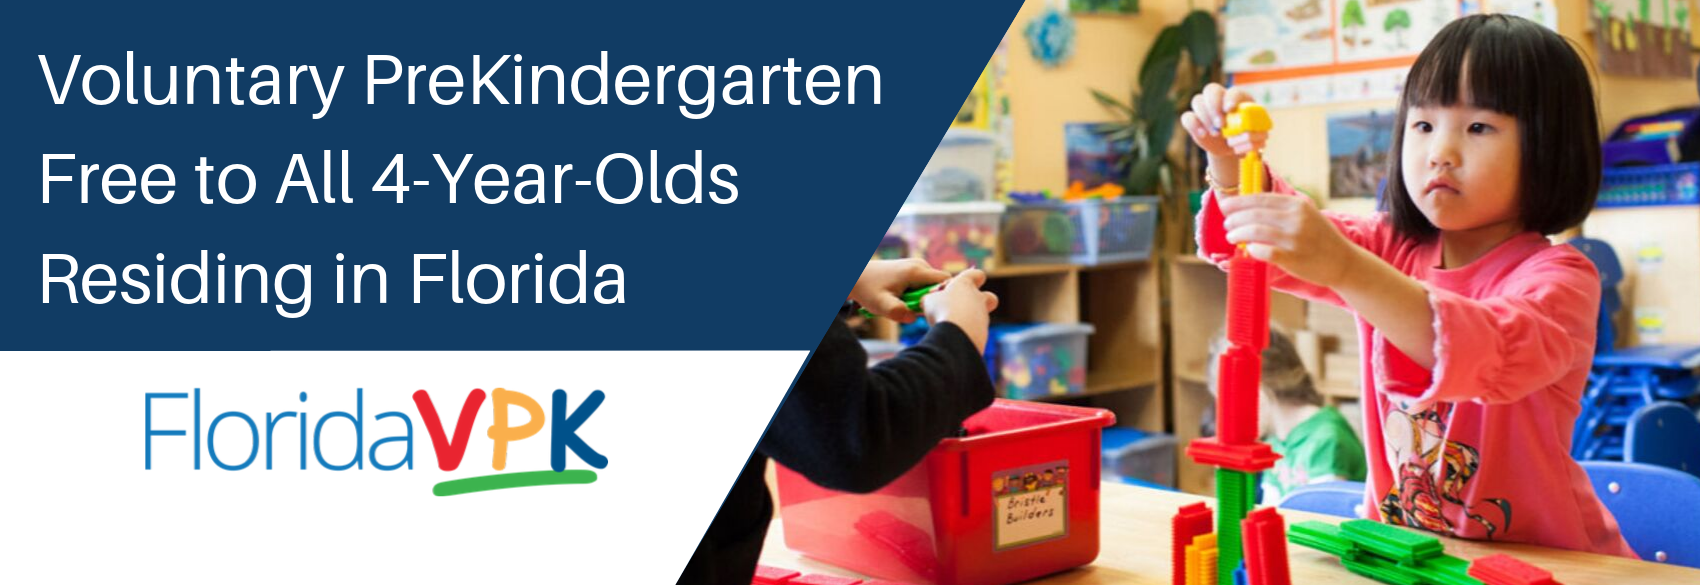 Voluntary PreKindergarten is free to all 4-year-old children residing in Florida.